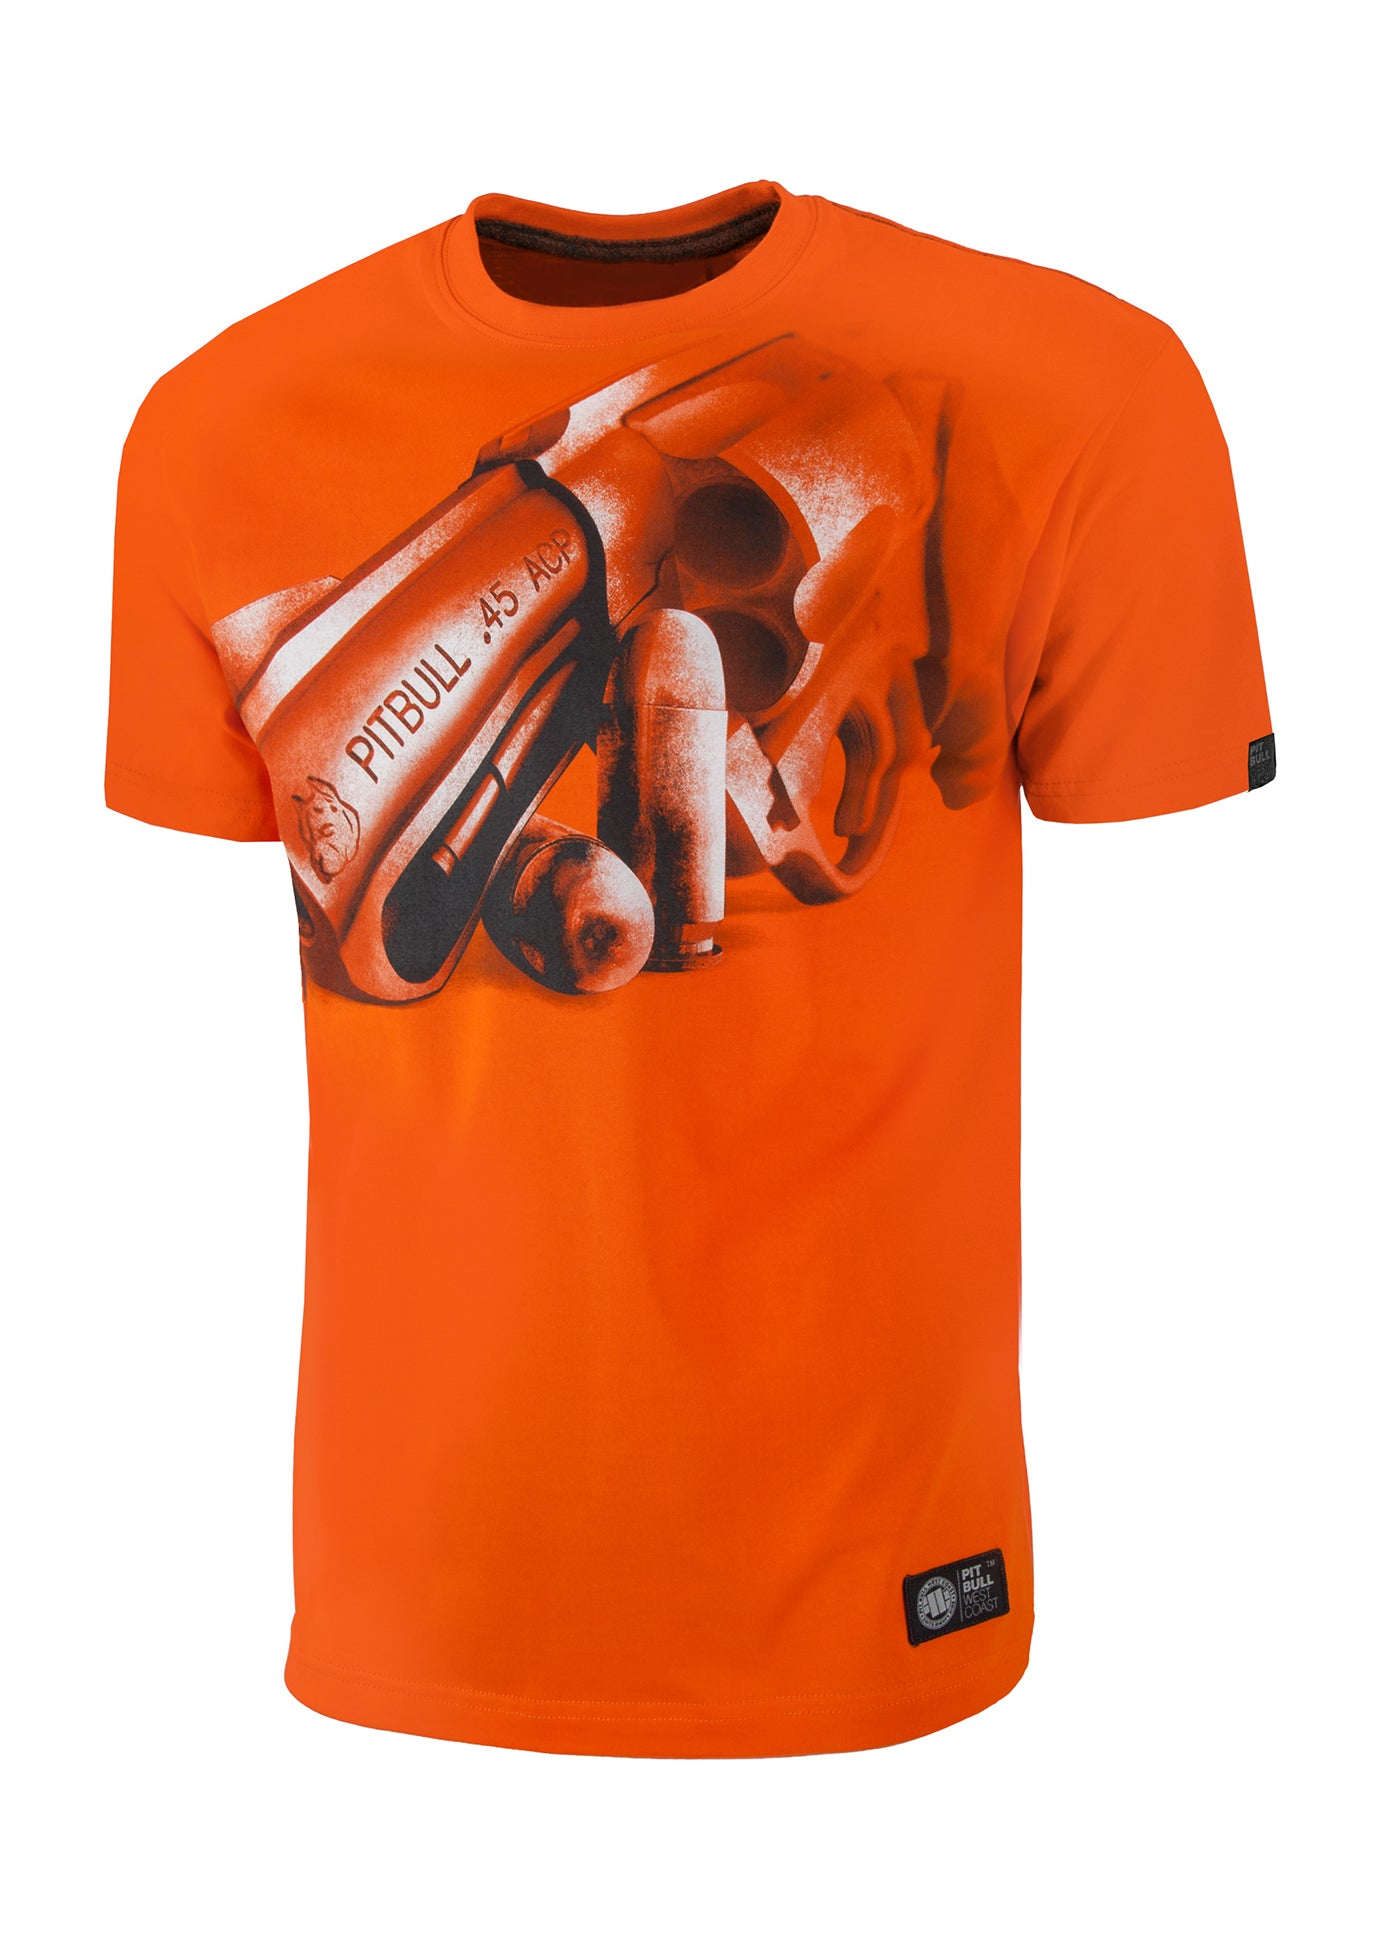 T-shirt So Cal 45 Orange - pitbullwestcoast